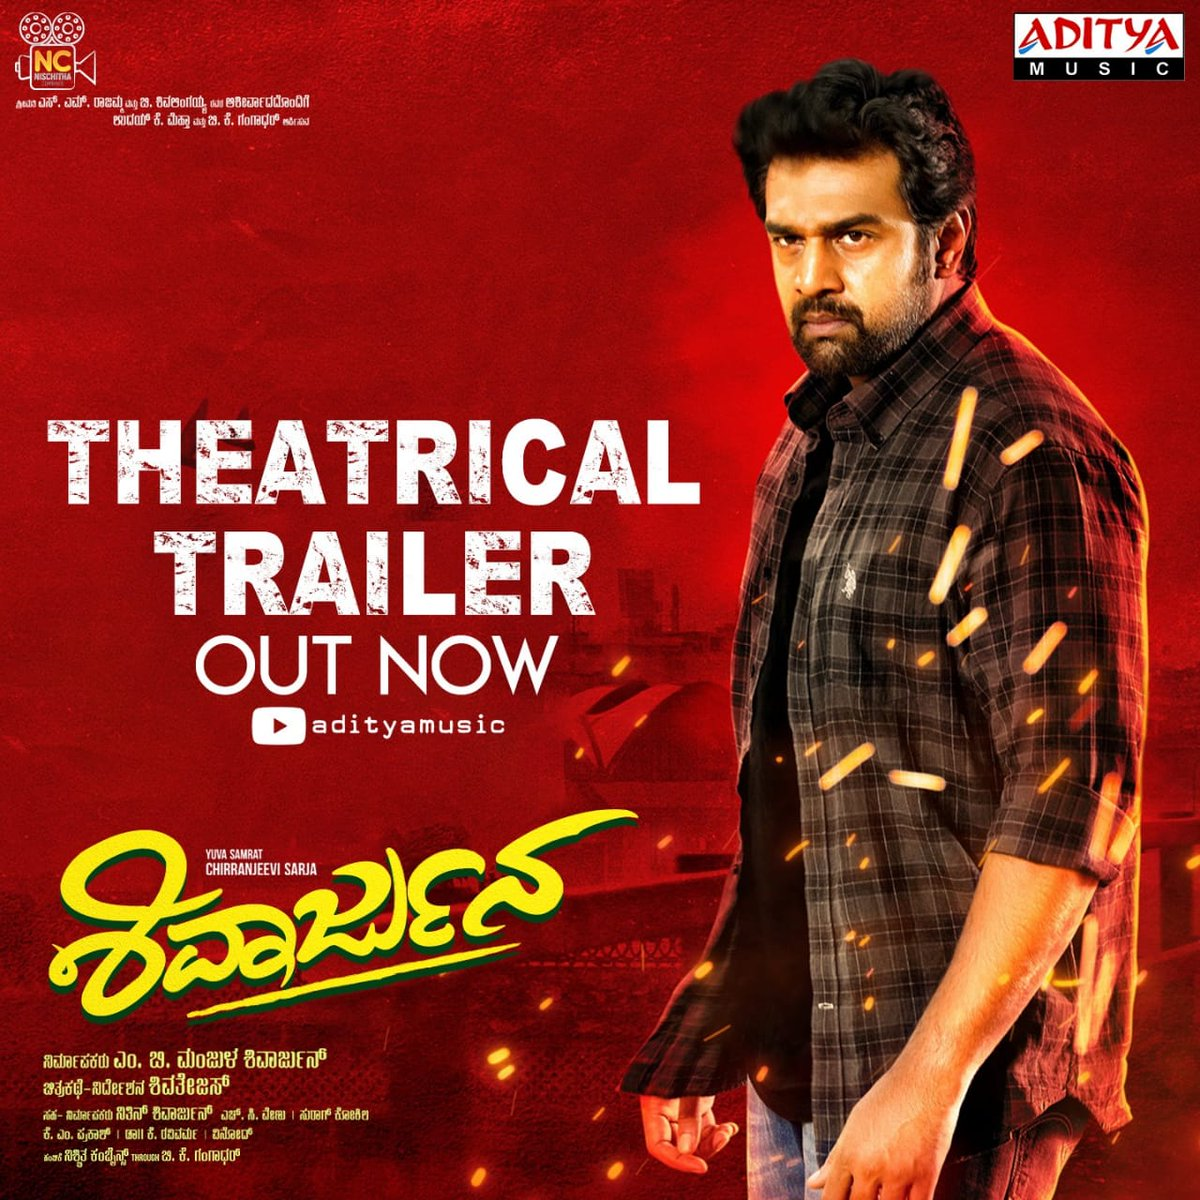 Action-Packed Theatrical Trailer Of #ShivaArjun Out Now On @adityamusic   ► https://www.youtube.com/watch?v=0Mk-L7exaXg…   @chirusarja #Amruthaayyangar #Shivatejass #NischithaCombines #Suragkokila #MBManjulapic.twitter.com/Jt1xgGkqiW